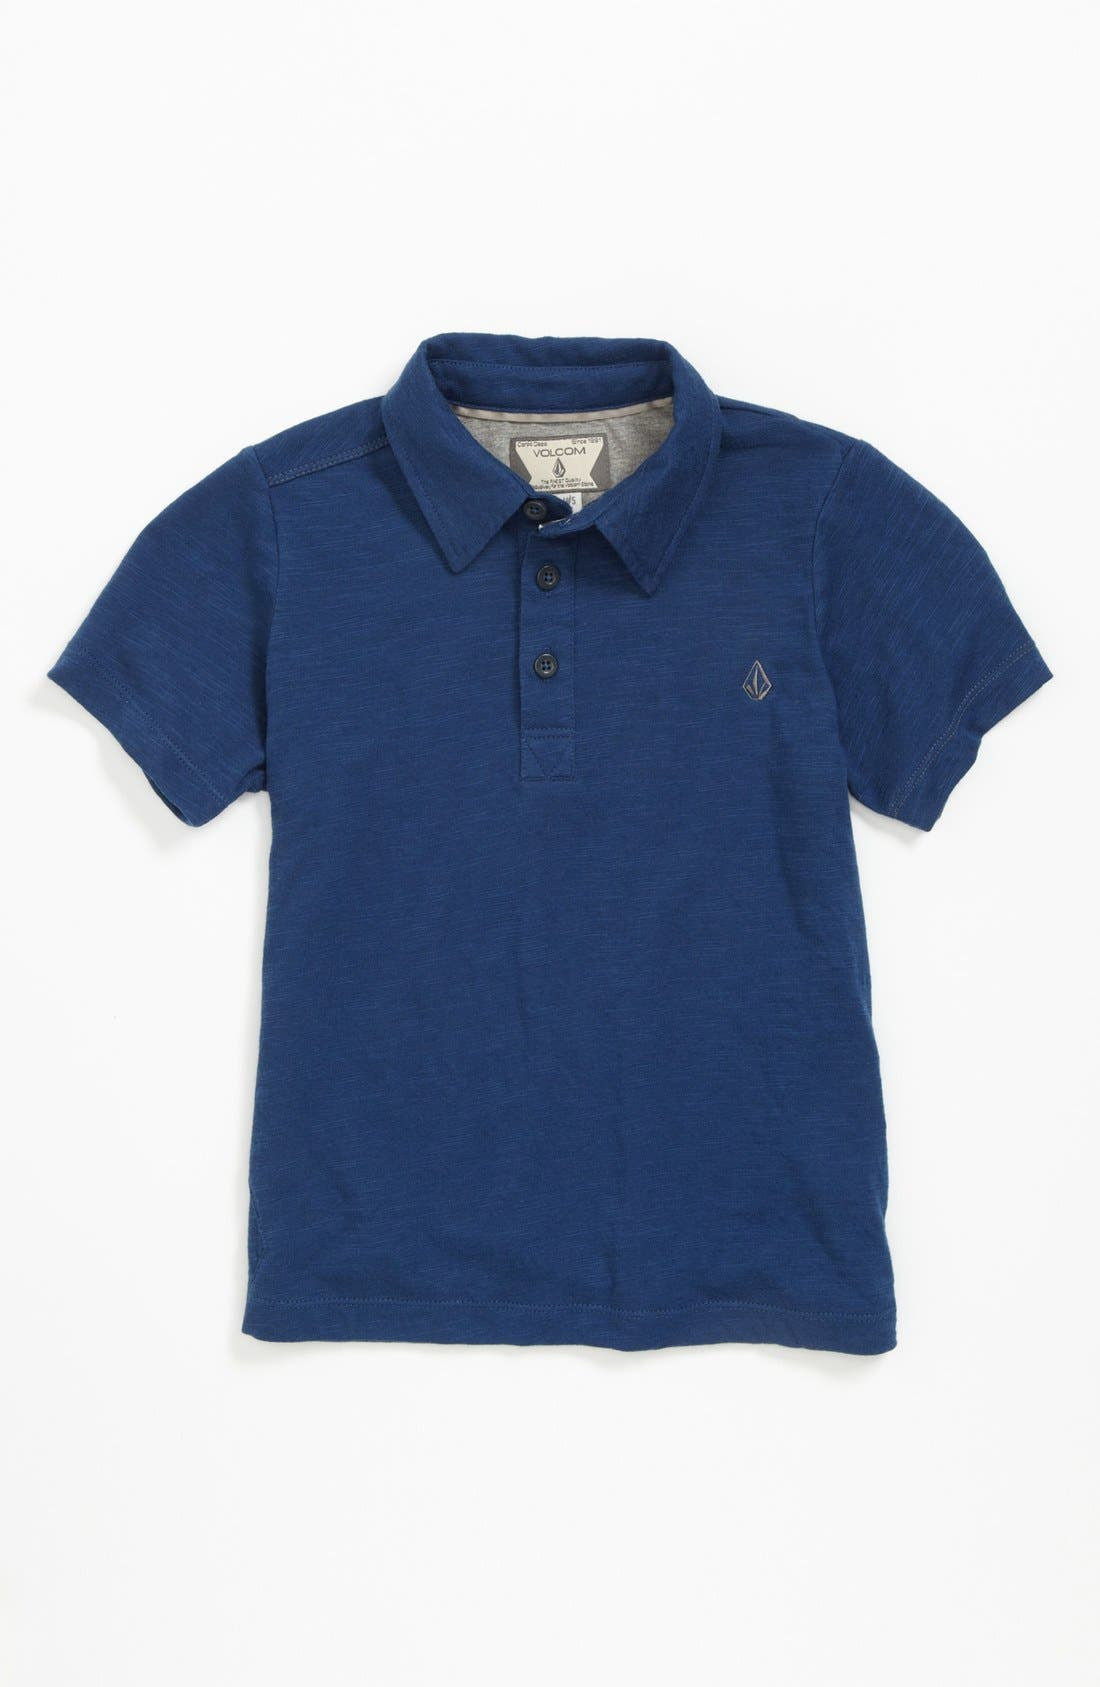 Alternate Image 1 Selected - Volcom 'Blackout' Slub Polo (Little Boys & Big Boys)